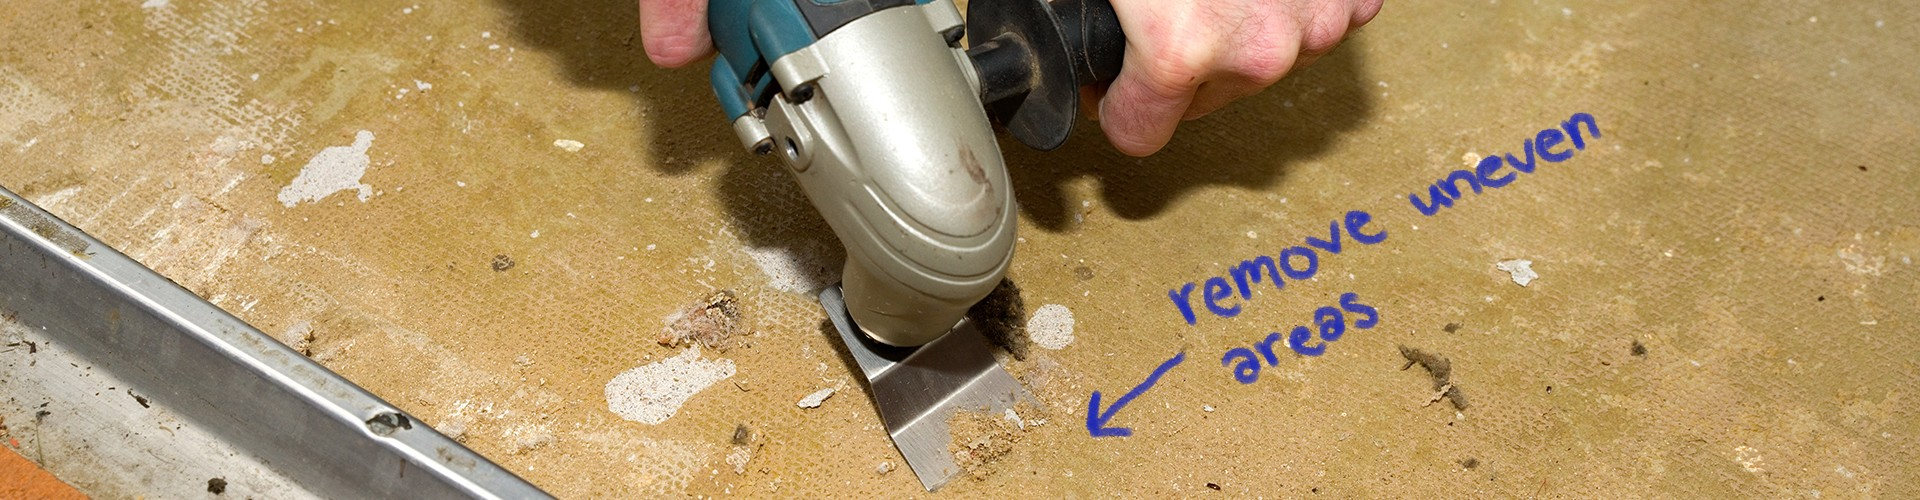 Precautions to take before laying down new flooring.